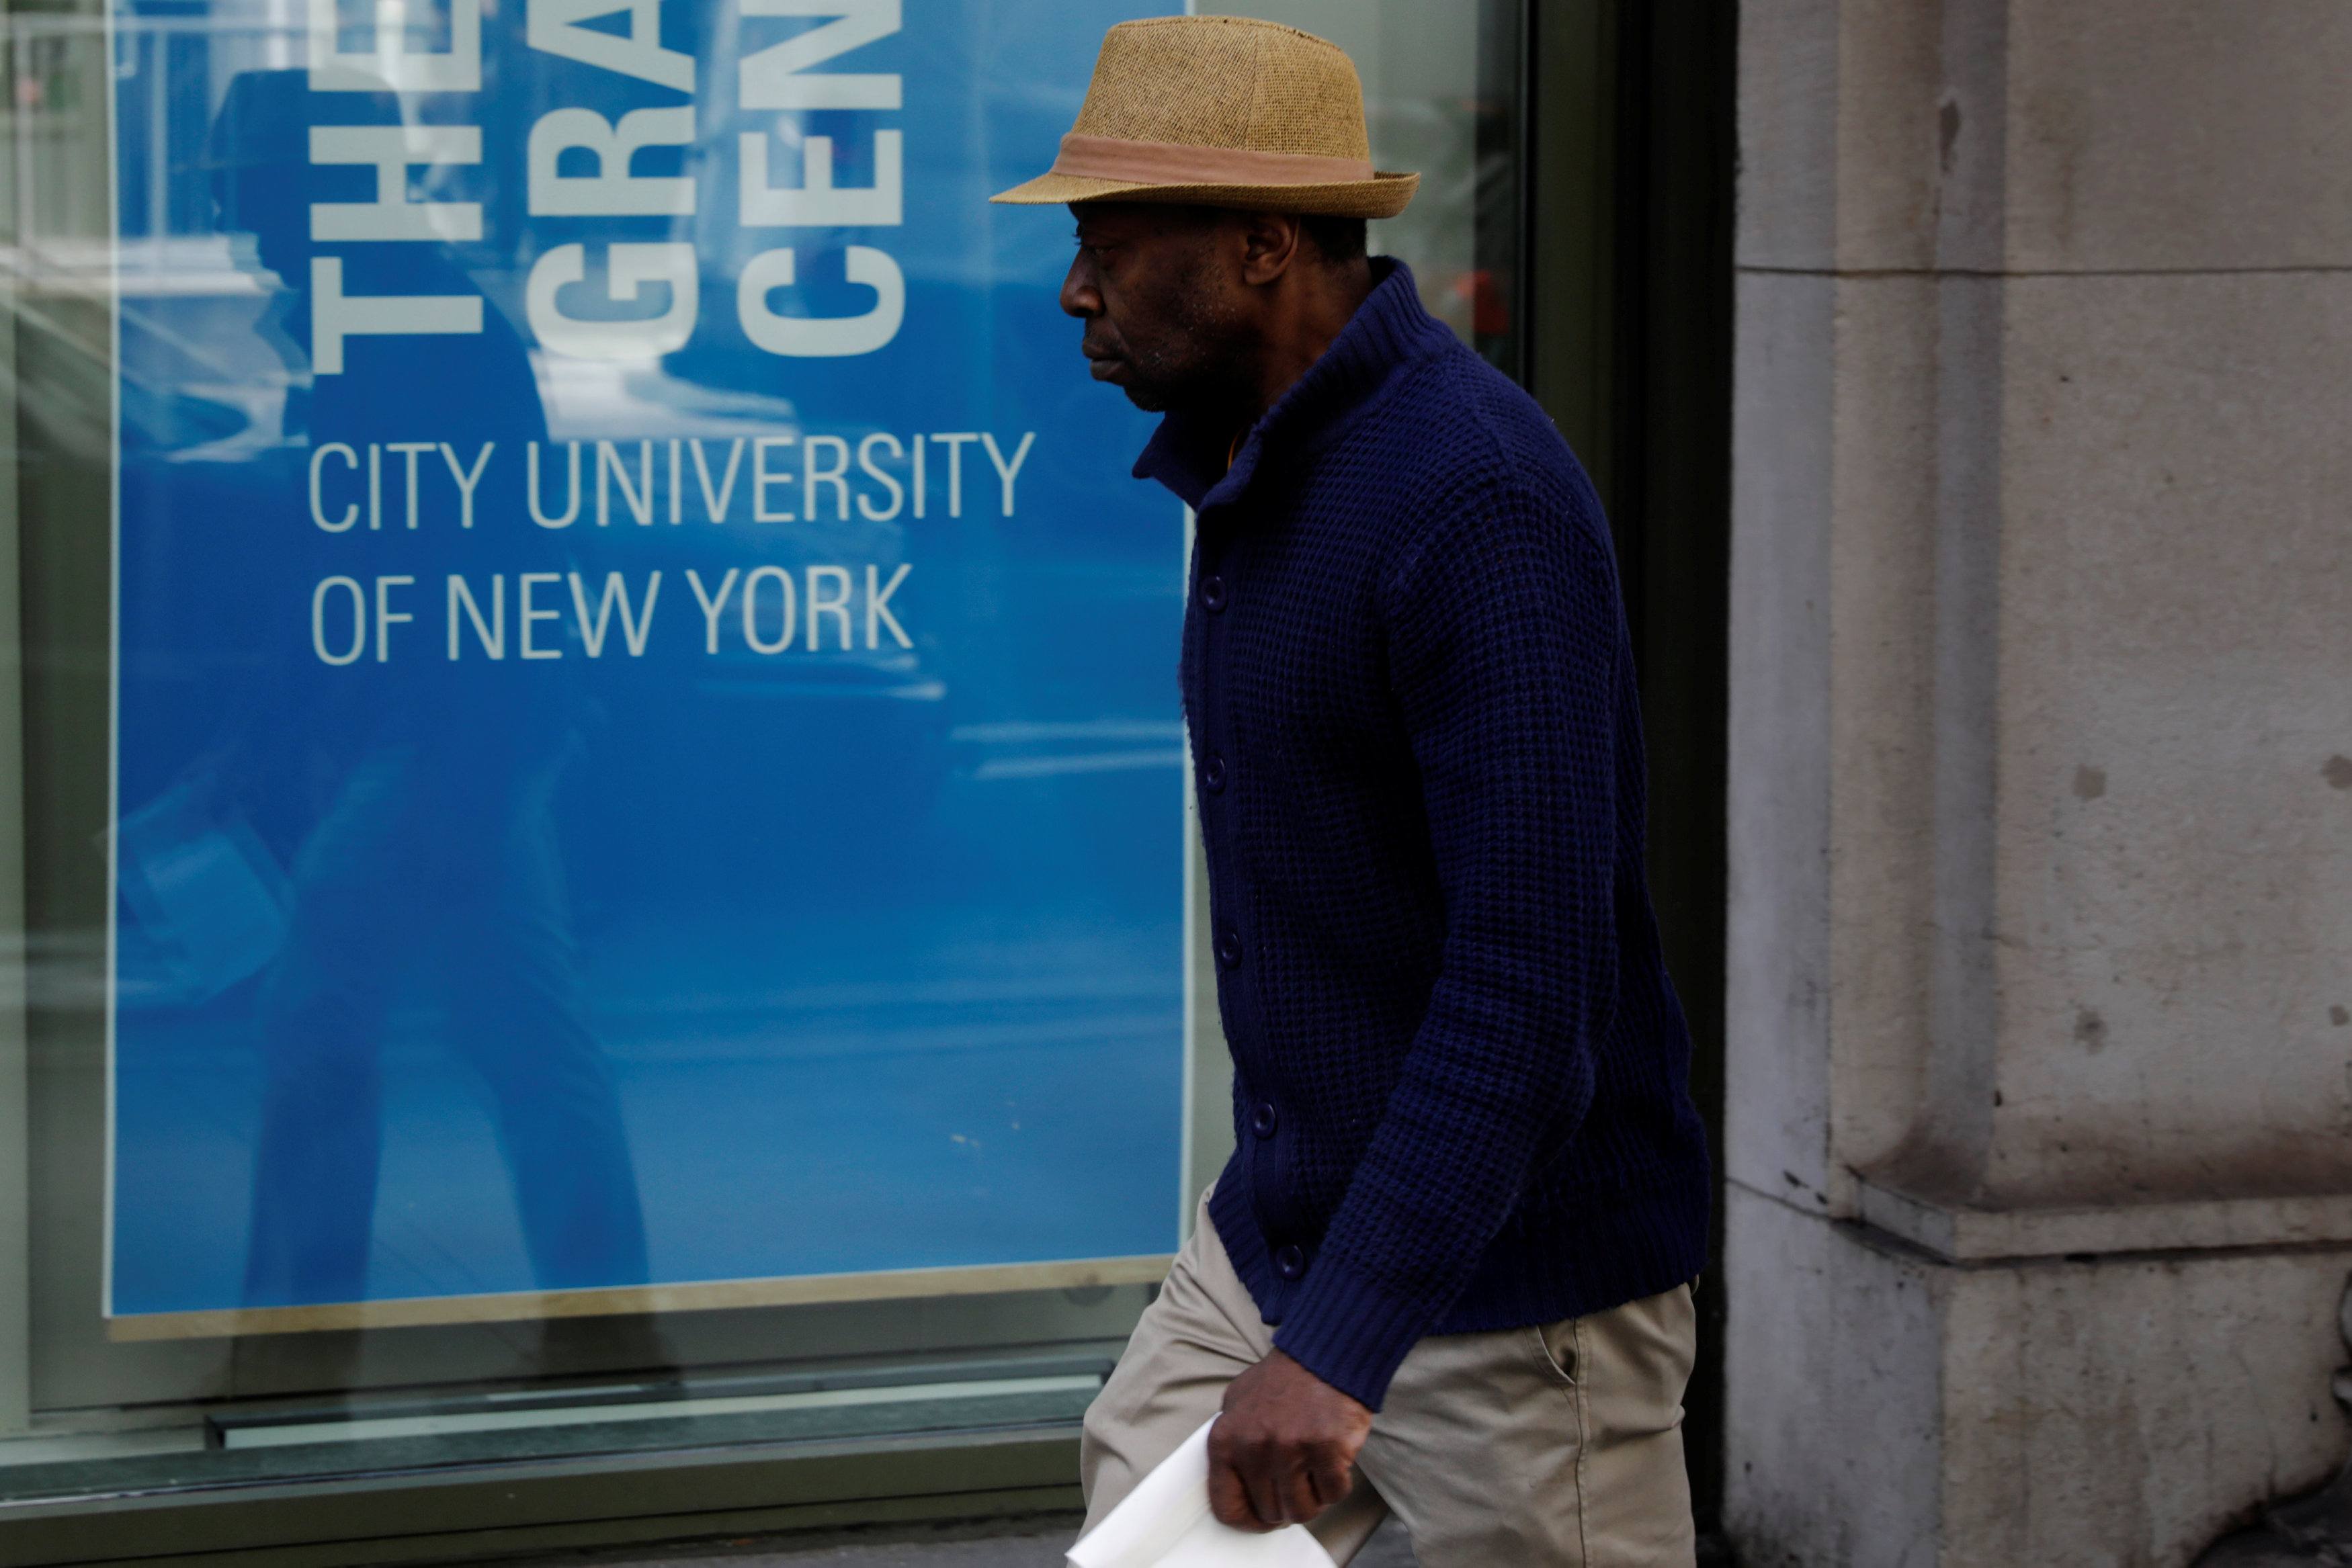 A pedestrian walks past a City University of New York building in New York on April 11, 2017. (REUTERS/Lucas Jackson)